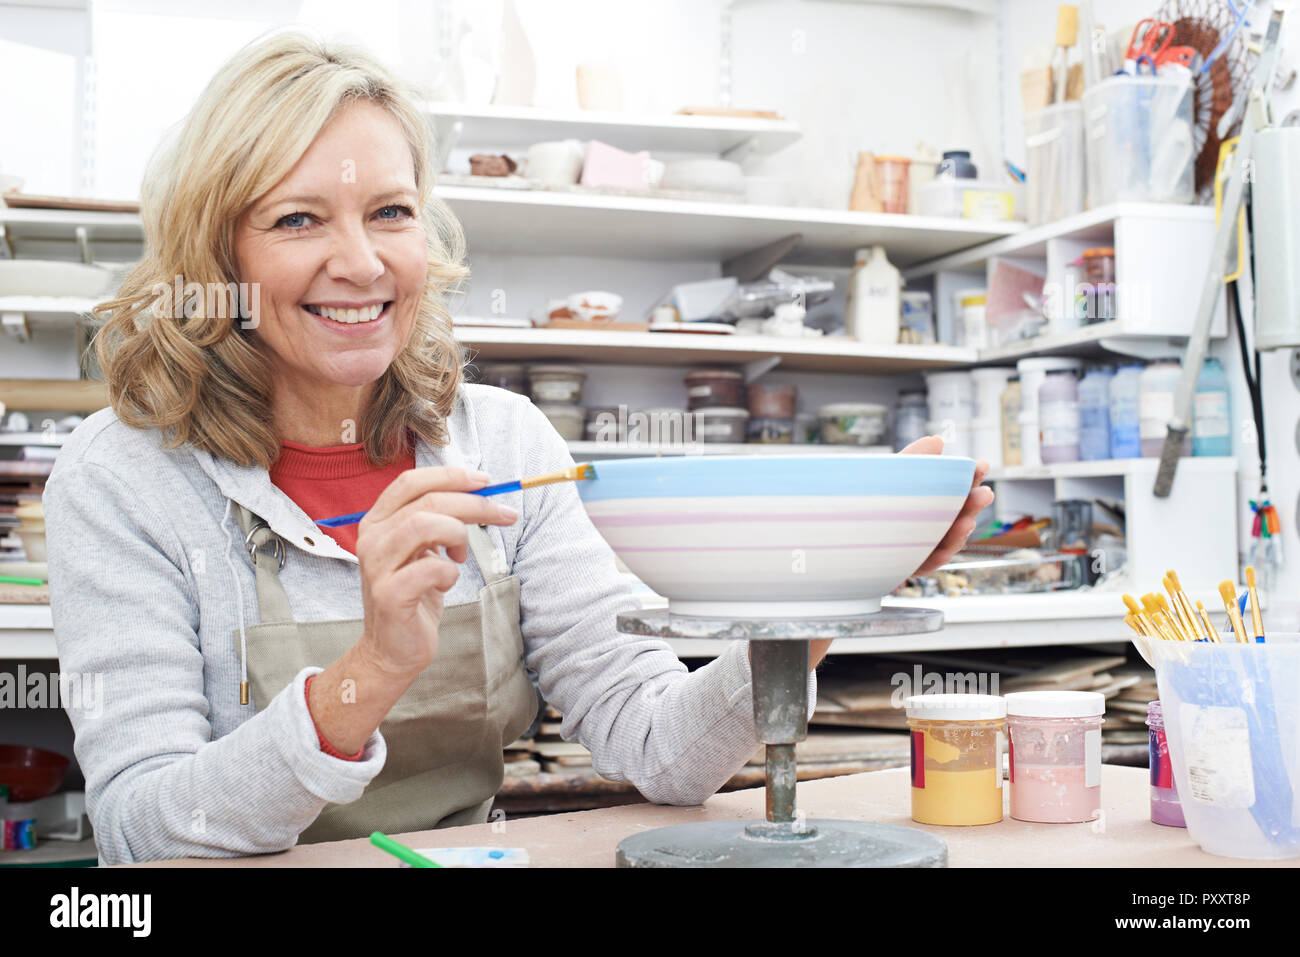 Portrait Of Mature Woman Decorating Bowl In Pottery Class - Stock Image